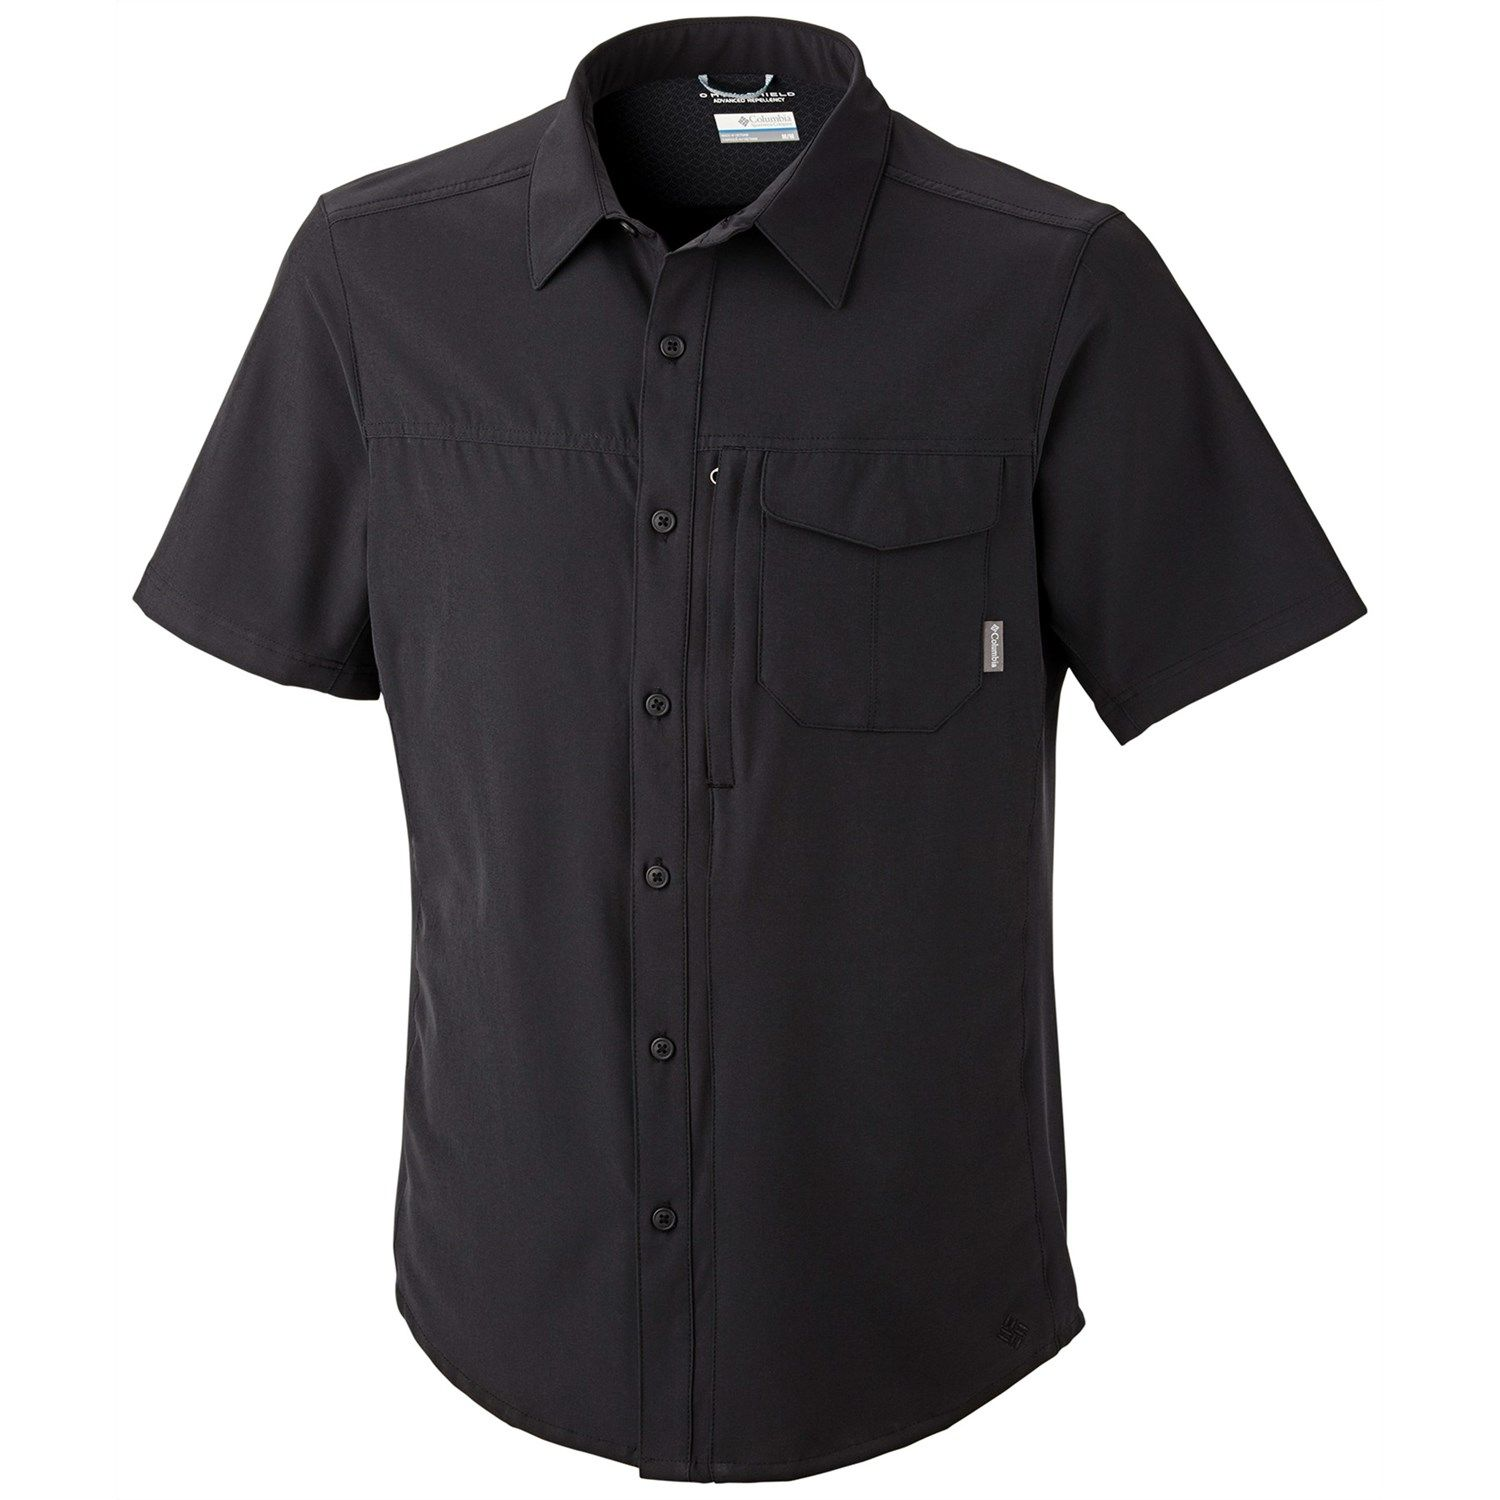 6990e62d8f0 Columbia Sportswear Global Adventure Shirt - UPF 50, Short Sleeve (For Men)  in Black